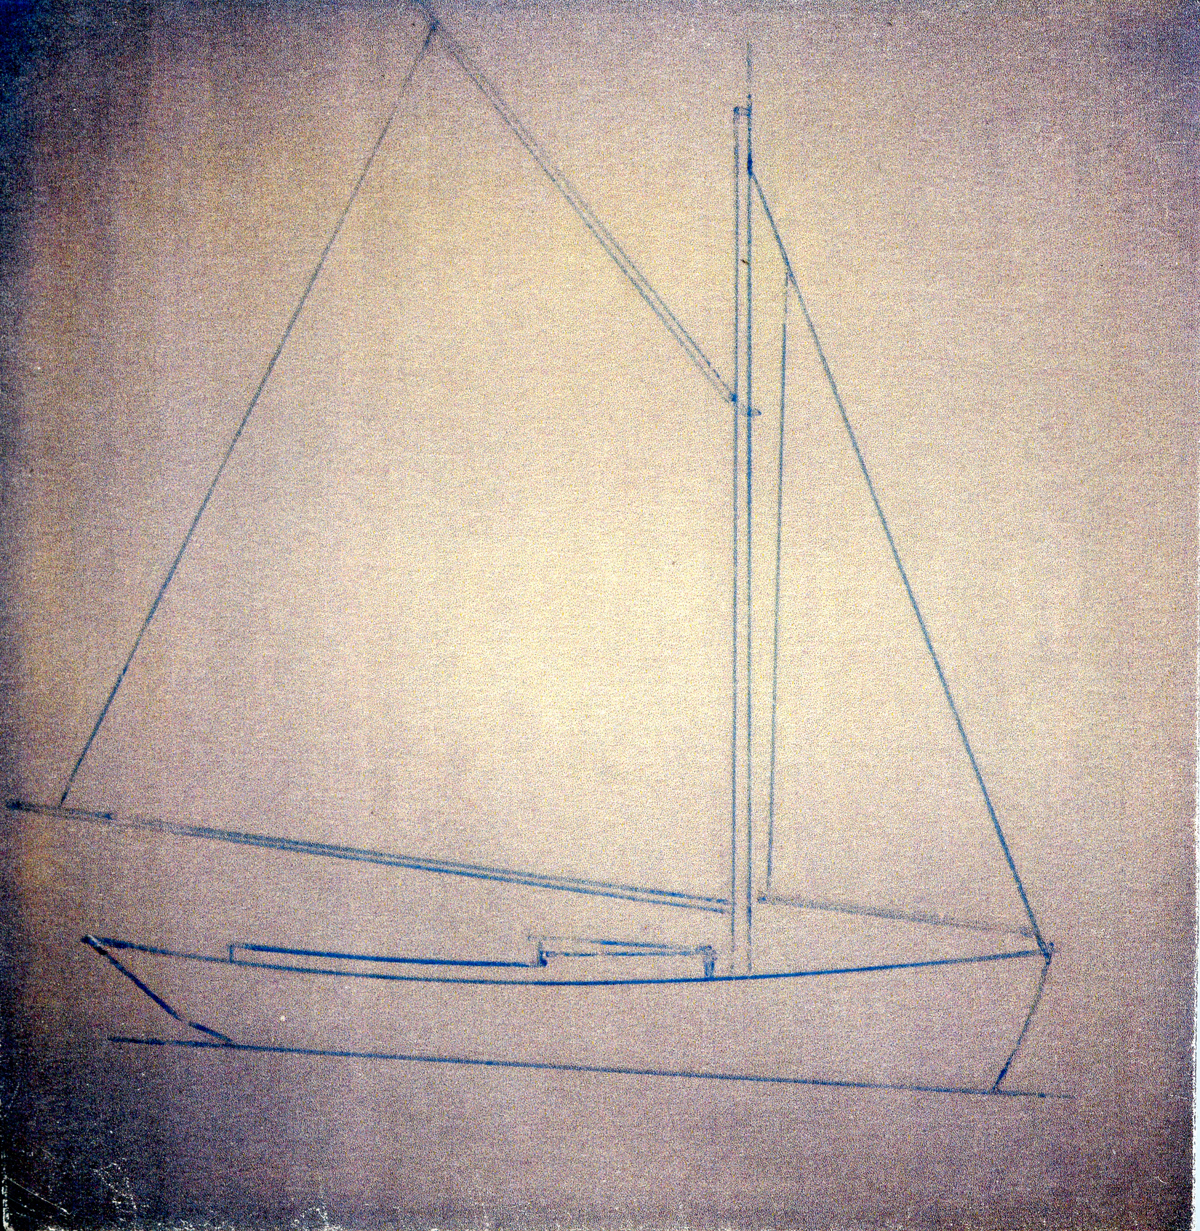 Stanley 19 - Friendship Influenced Open Sailboat